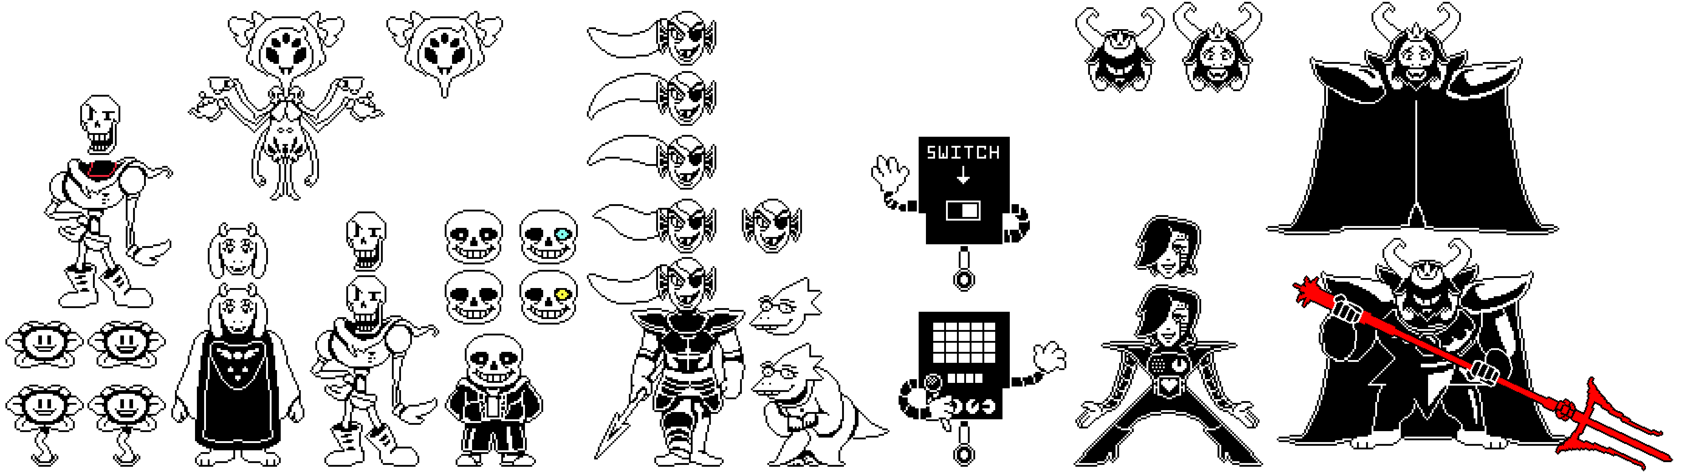 jpg library library Collection of free Undertale transparent